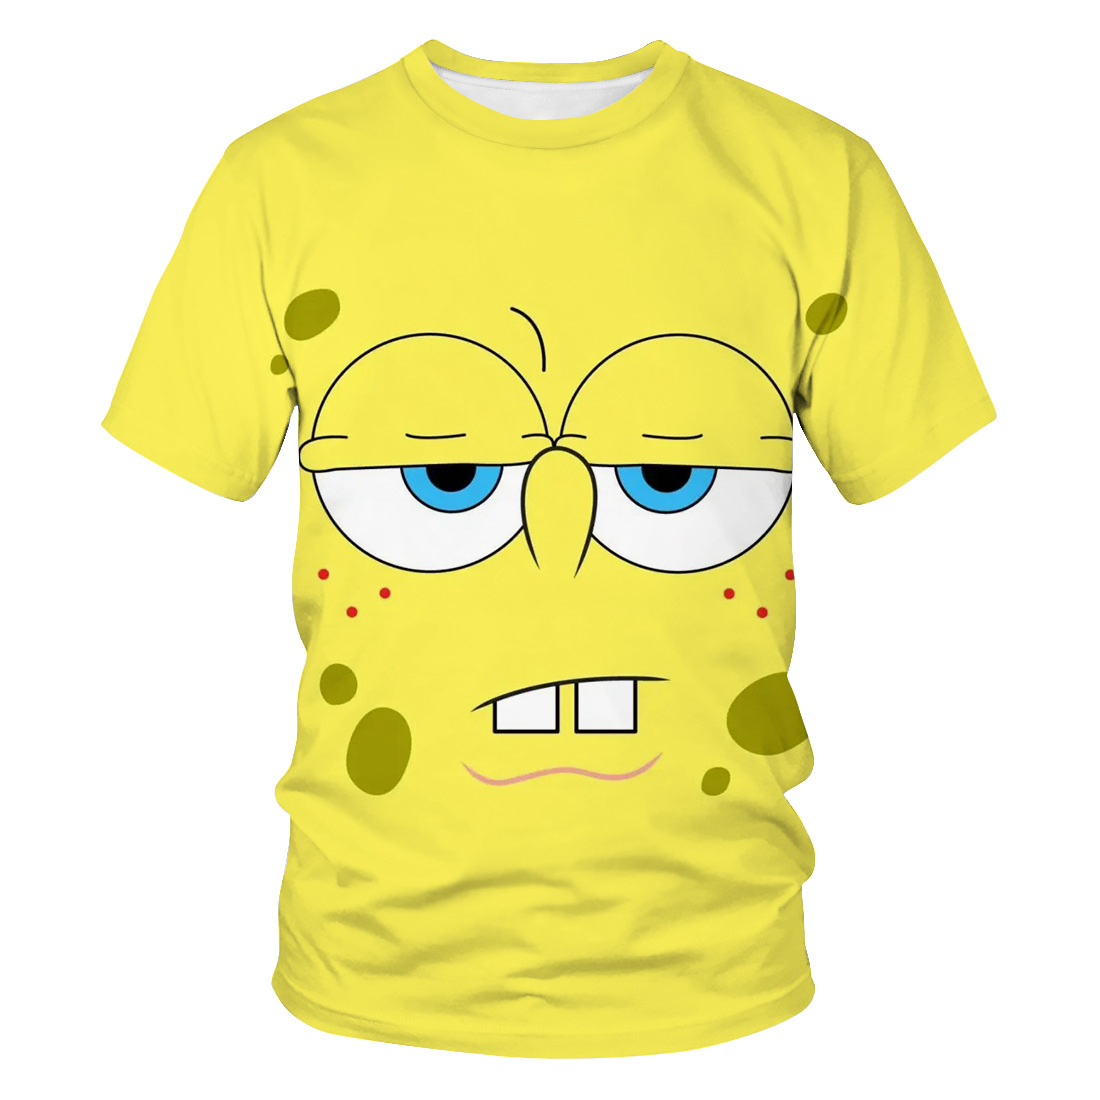 2020 New 3D Printing Cute SpongeBob T-shirt Men 3DT Shirt Women 3DT-Shirt Cute Casual Top T-shirt